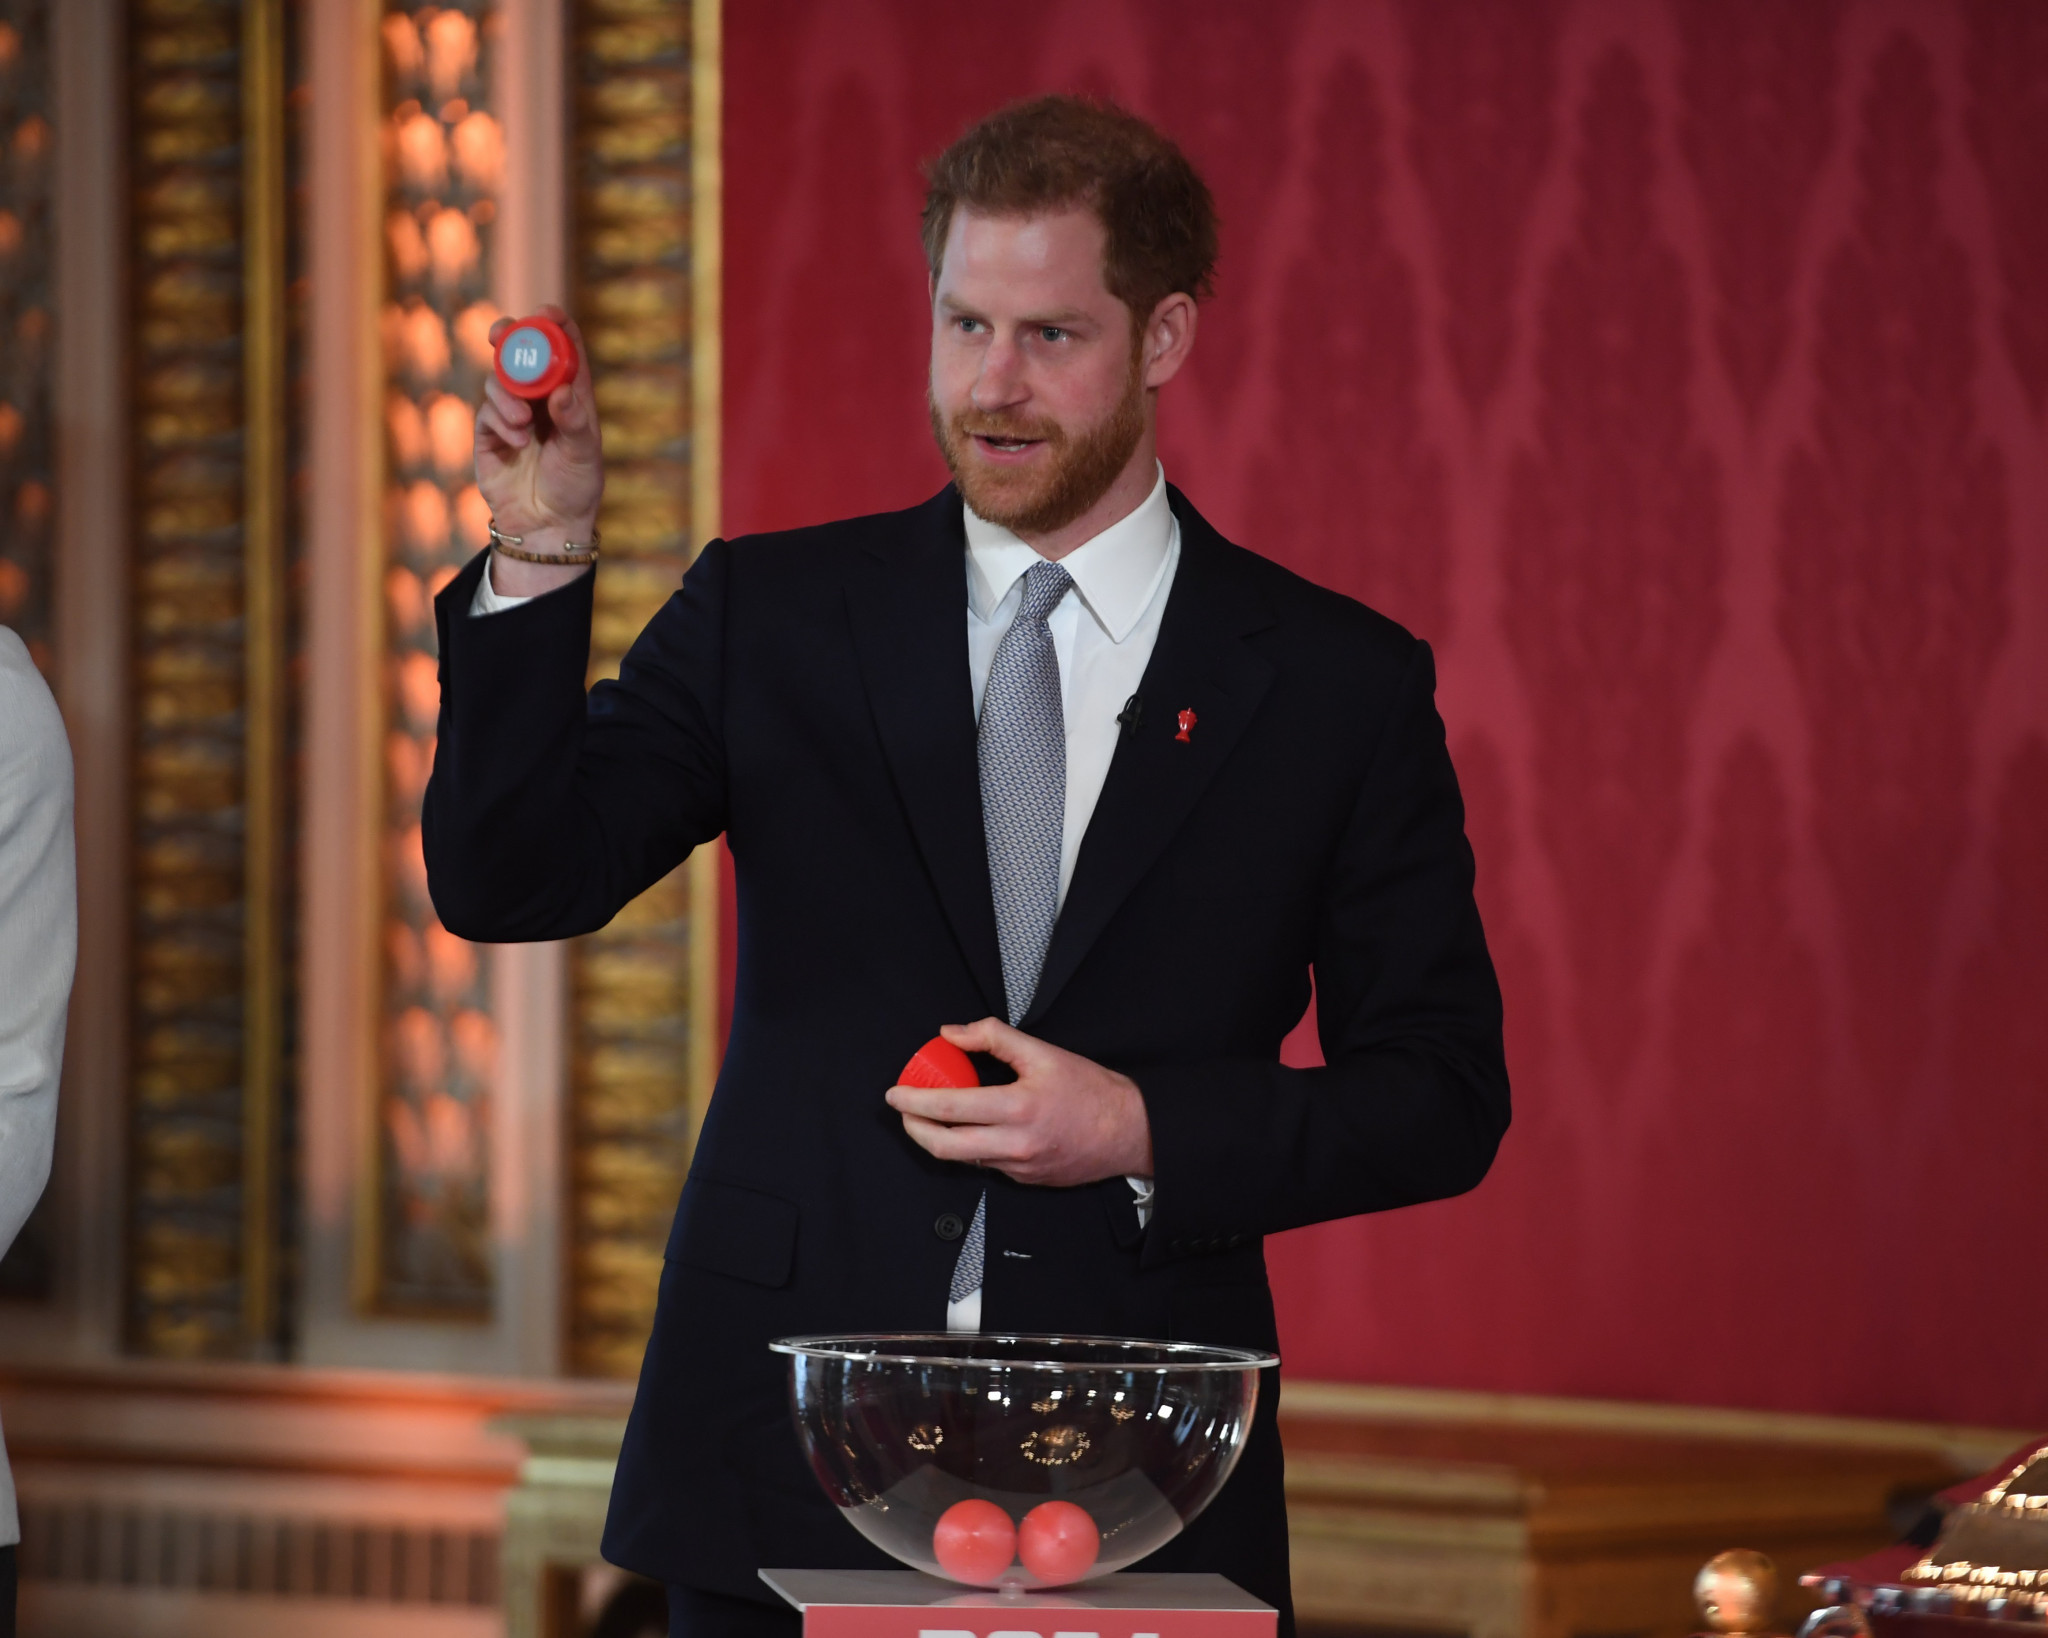 Prince Harry conducted the 2021 Rugby League World Cup draw at Buckingham Palace ©Getty Images